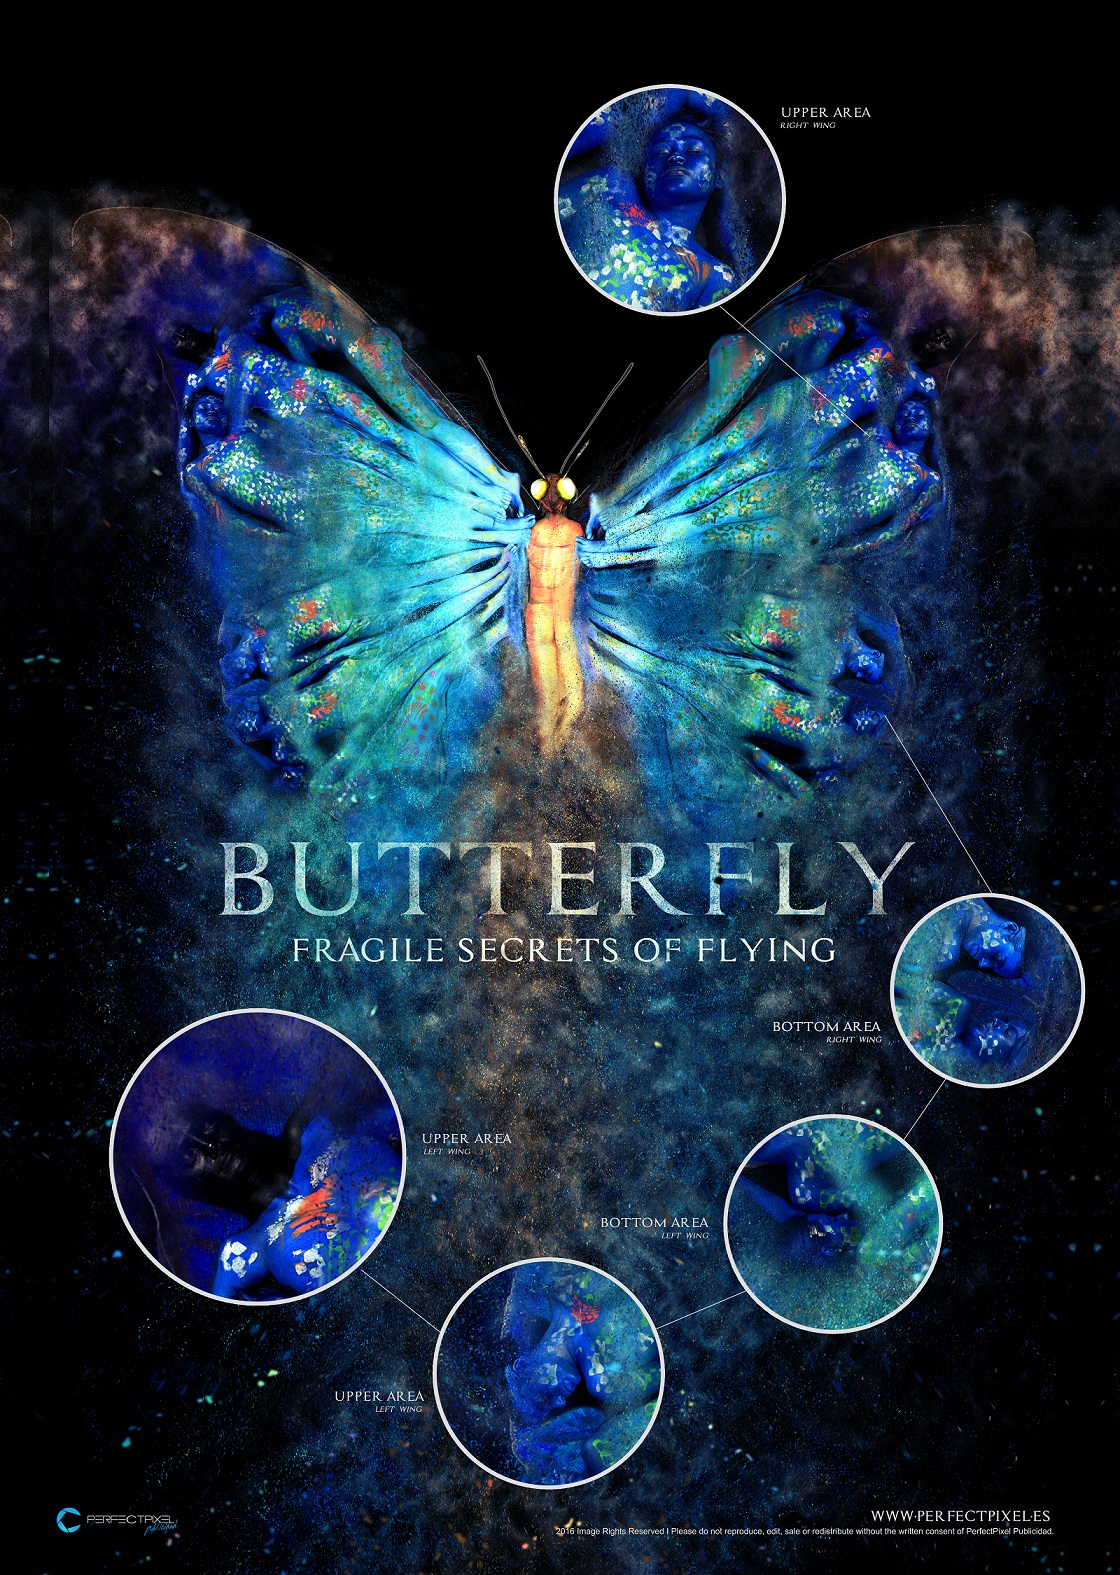 https://www.perfectpixel.es/wp-content/uploads/2016/01/Butterfly-Fragile-Secrets-of-Flying-by-PerfectPixel-Dissection-of-final-composition.jpg